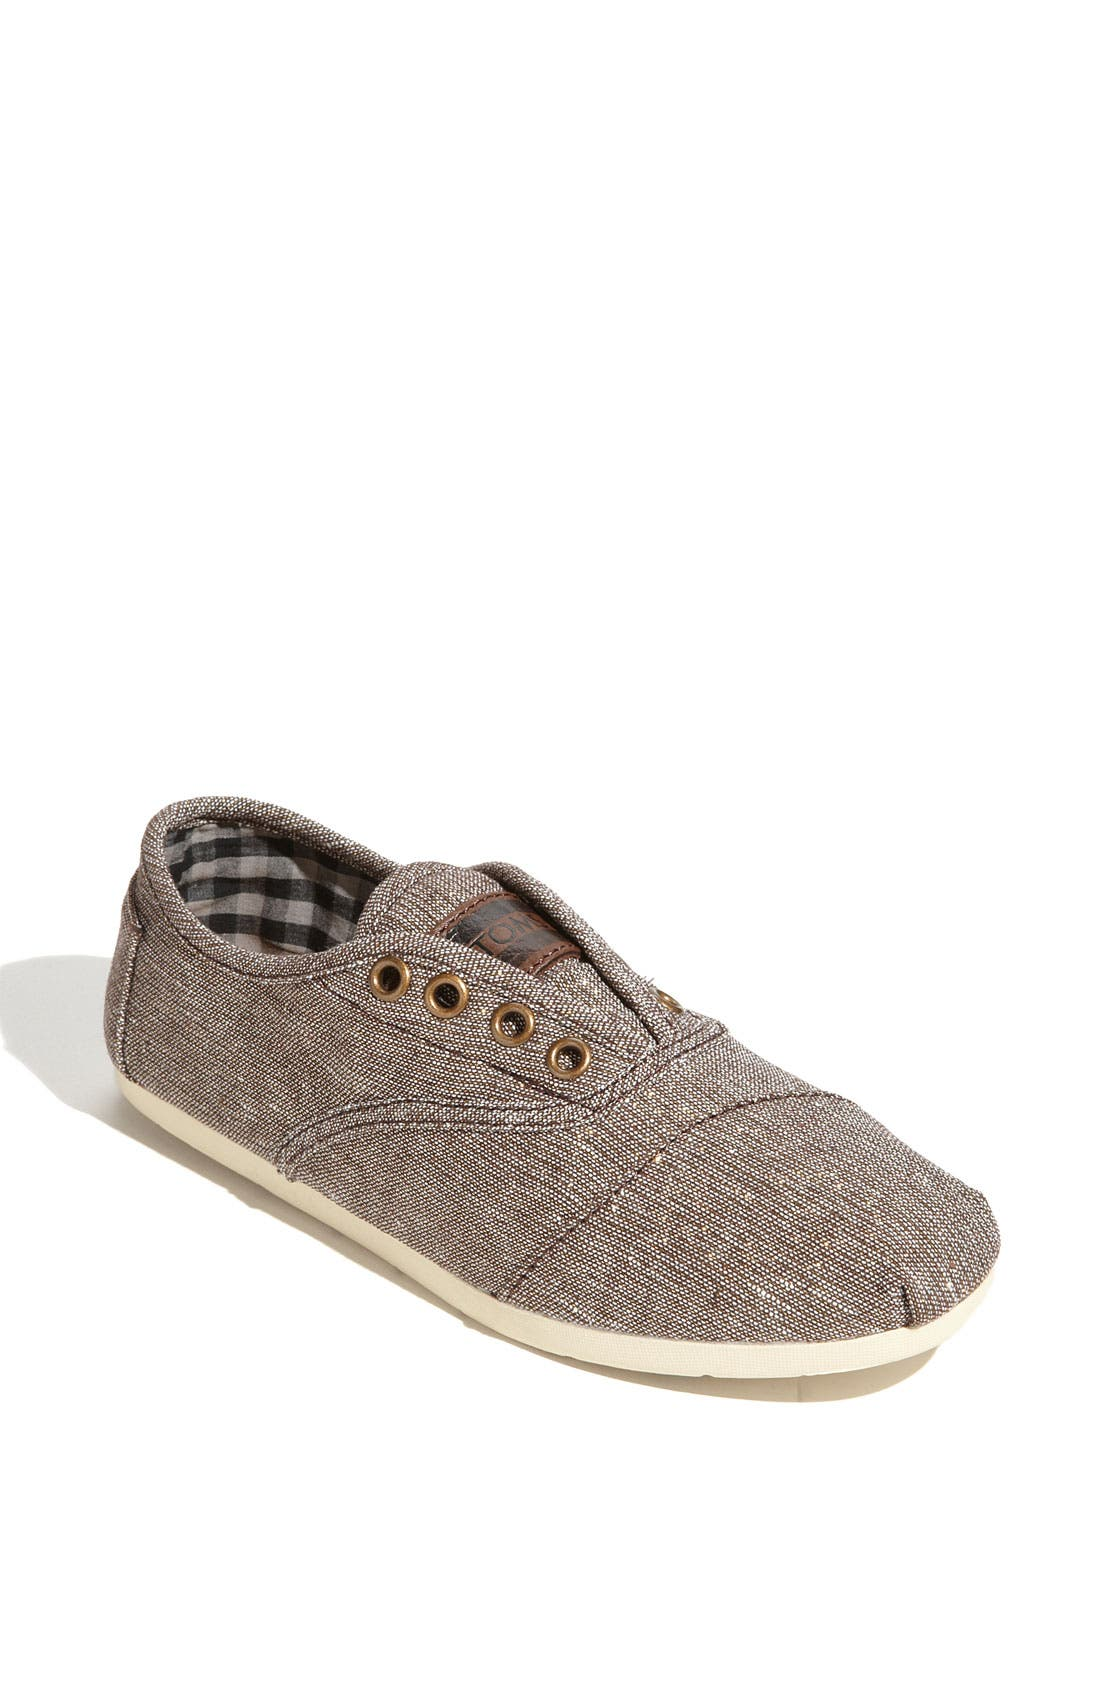 Main Image - TOMS 'Cordones' Metallic Slip-On (Women)